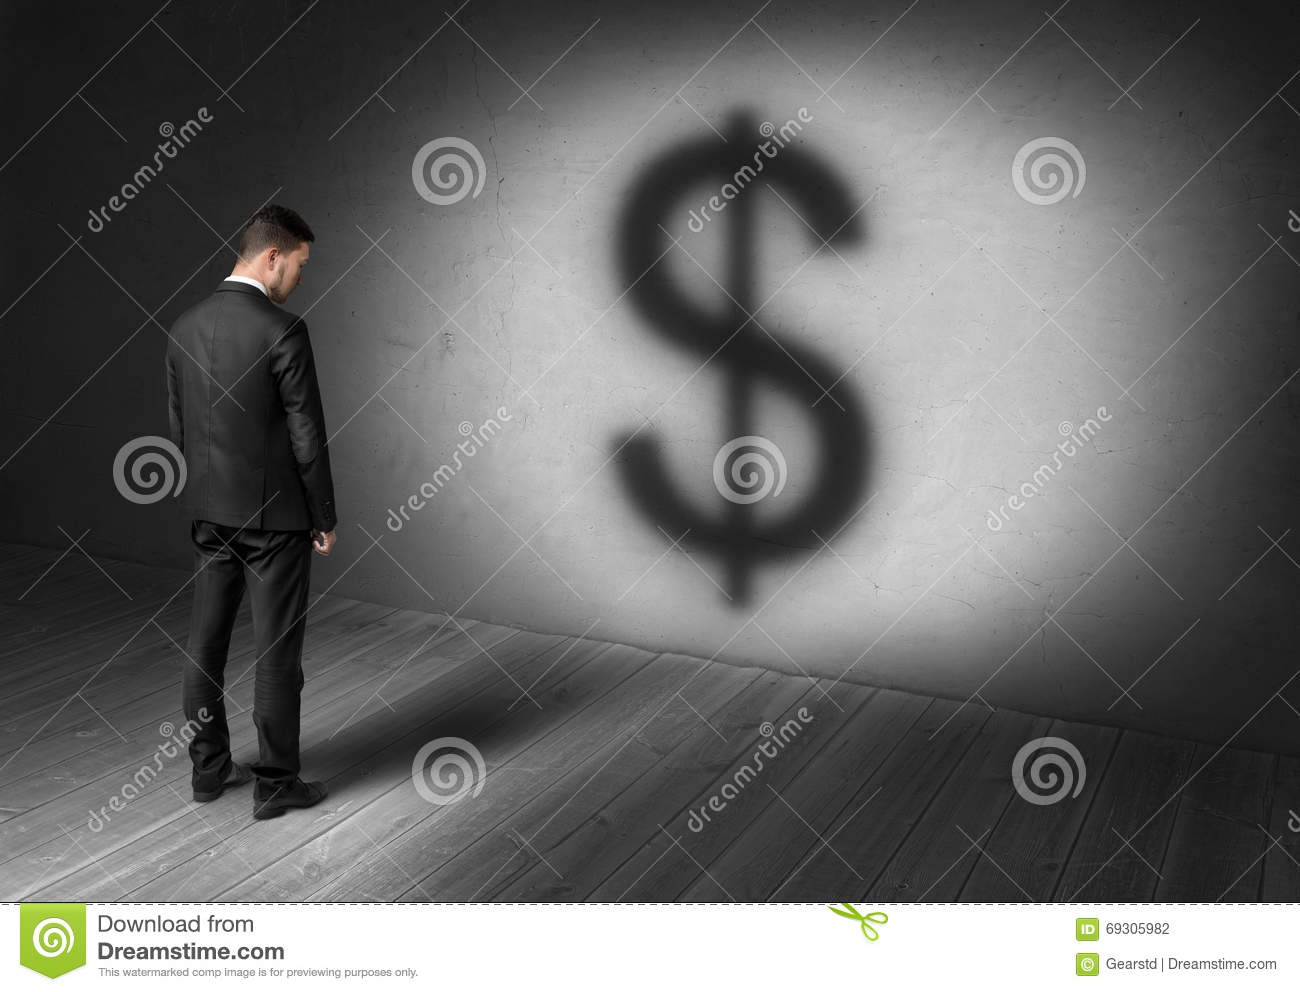 Businessman standing in front of concrete wall on spotlight with big dollar sign looking like shadow